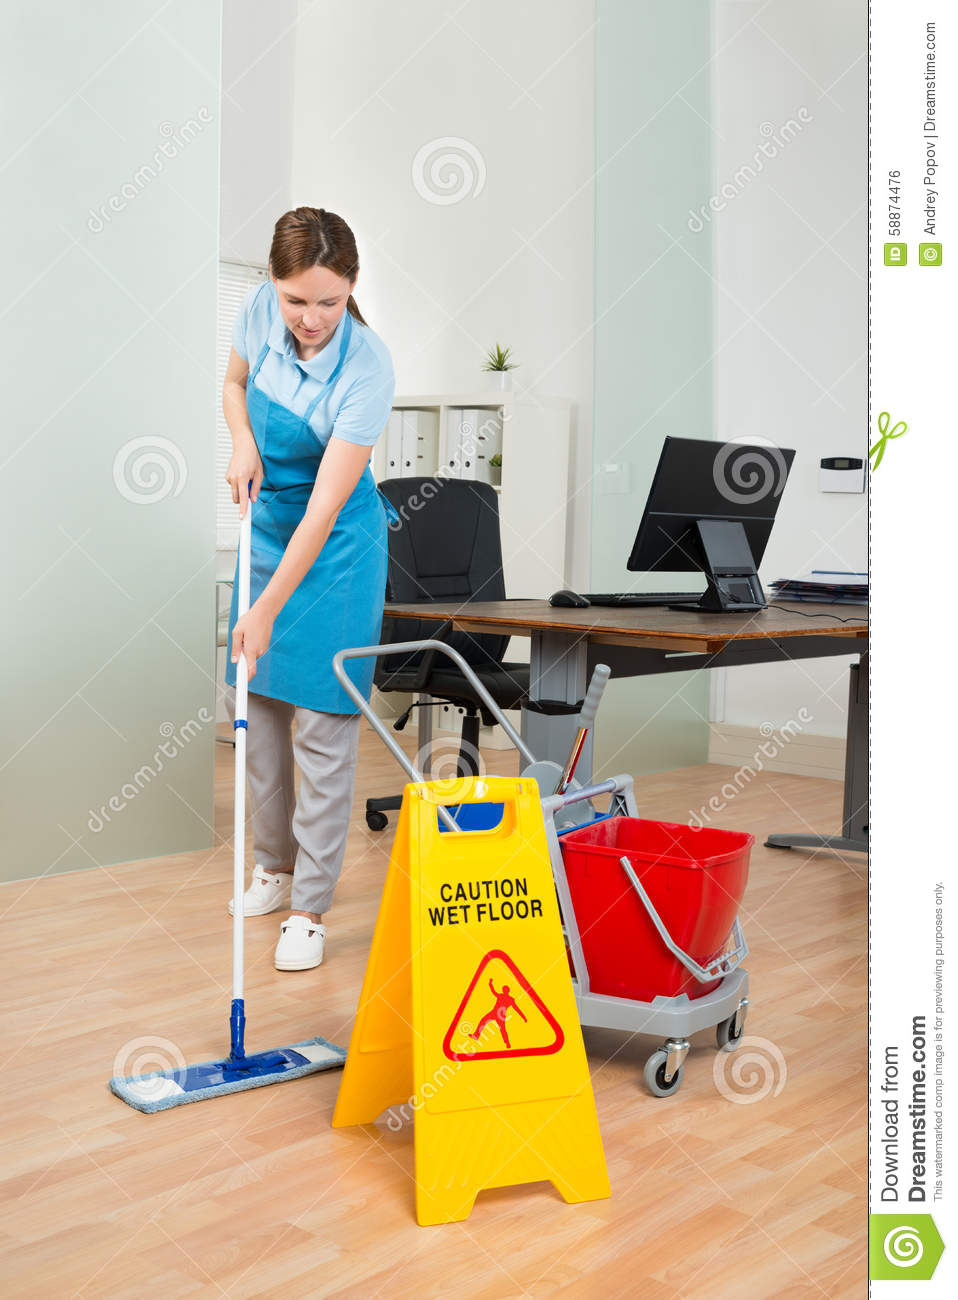 Female Janitor Cleaning Hardwood Floor In Office Stock